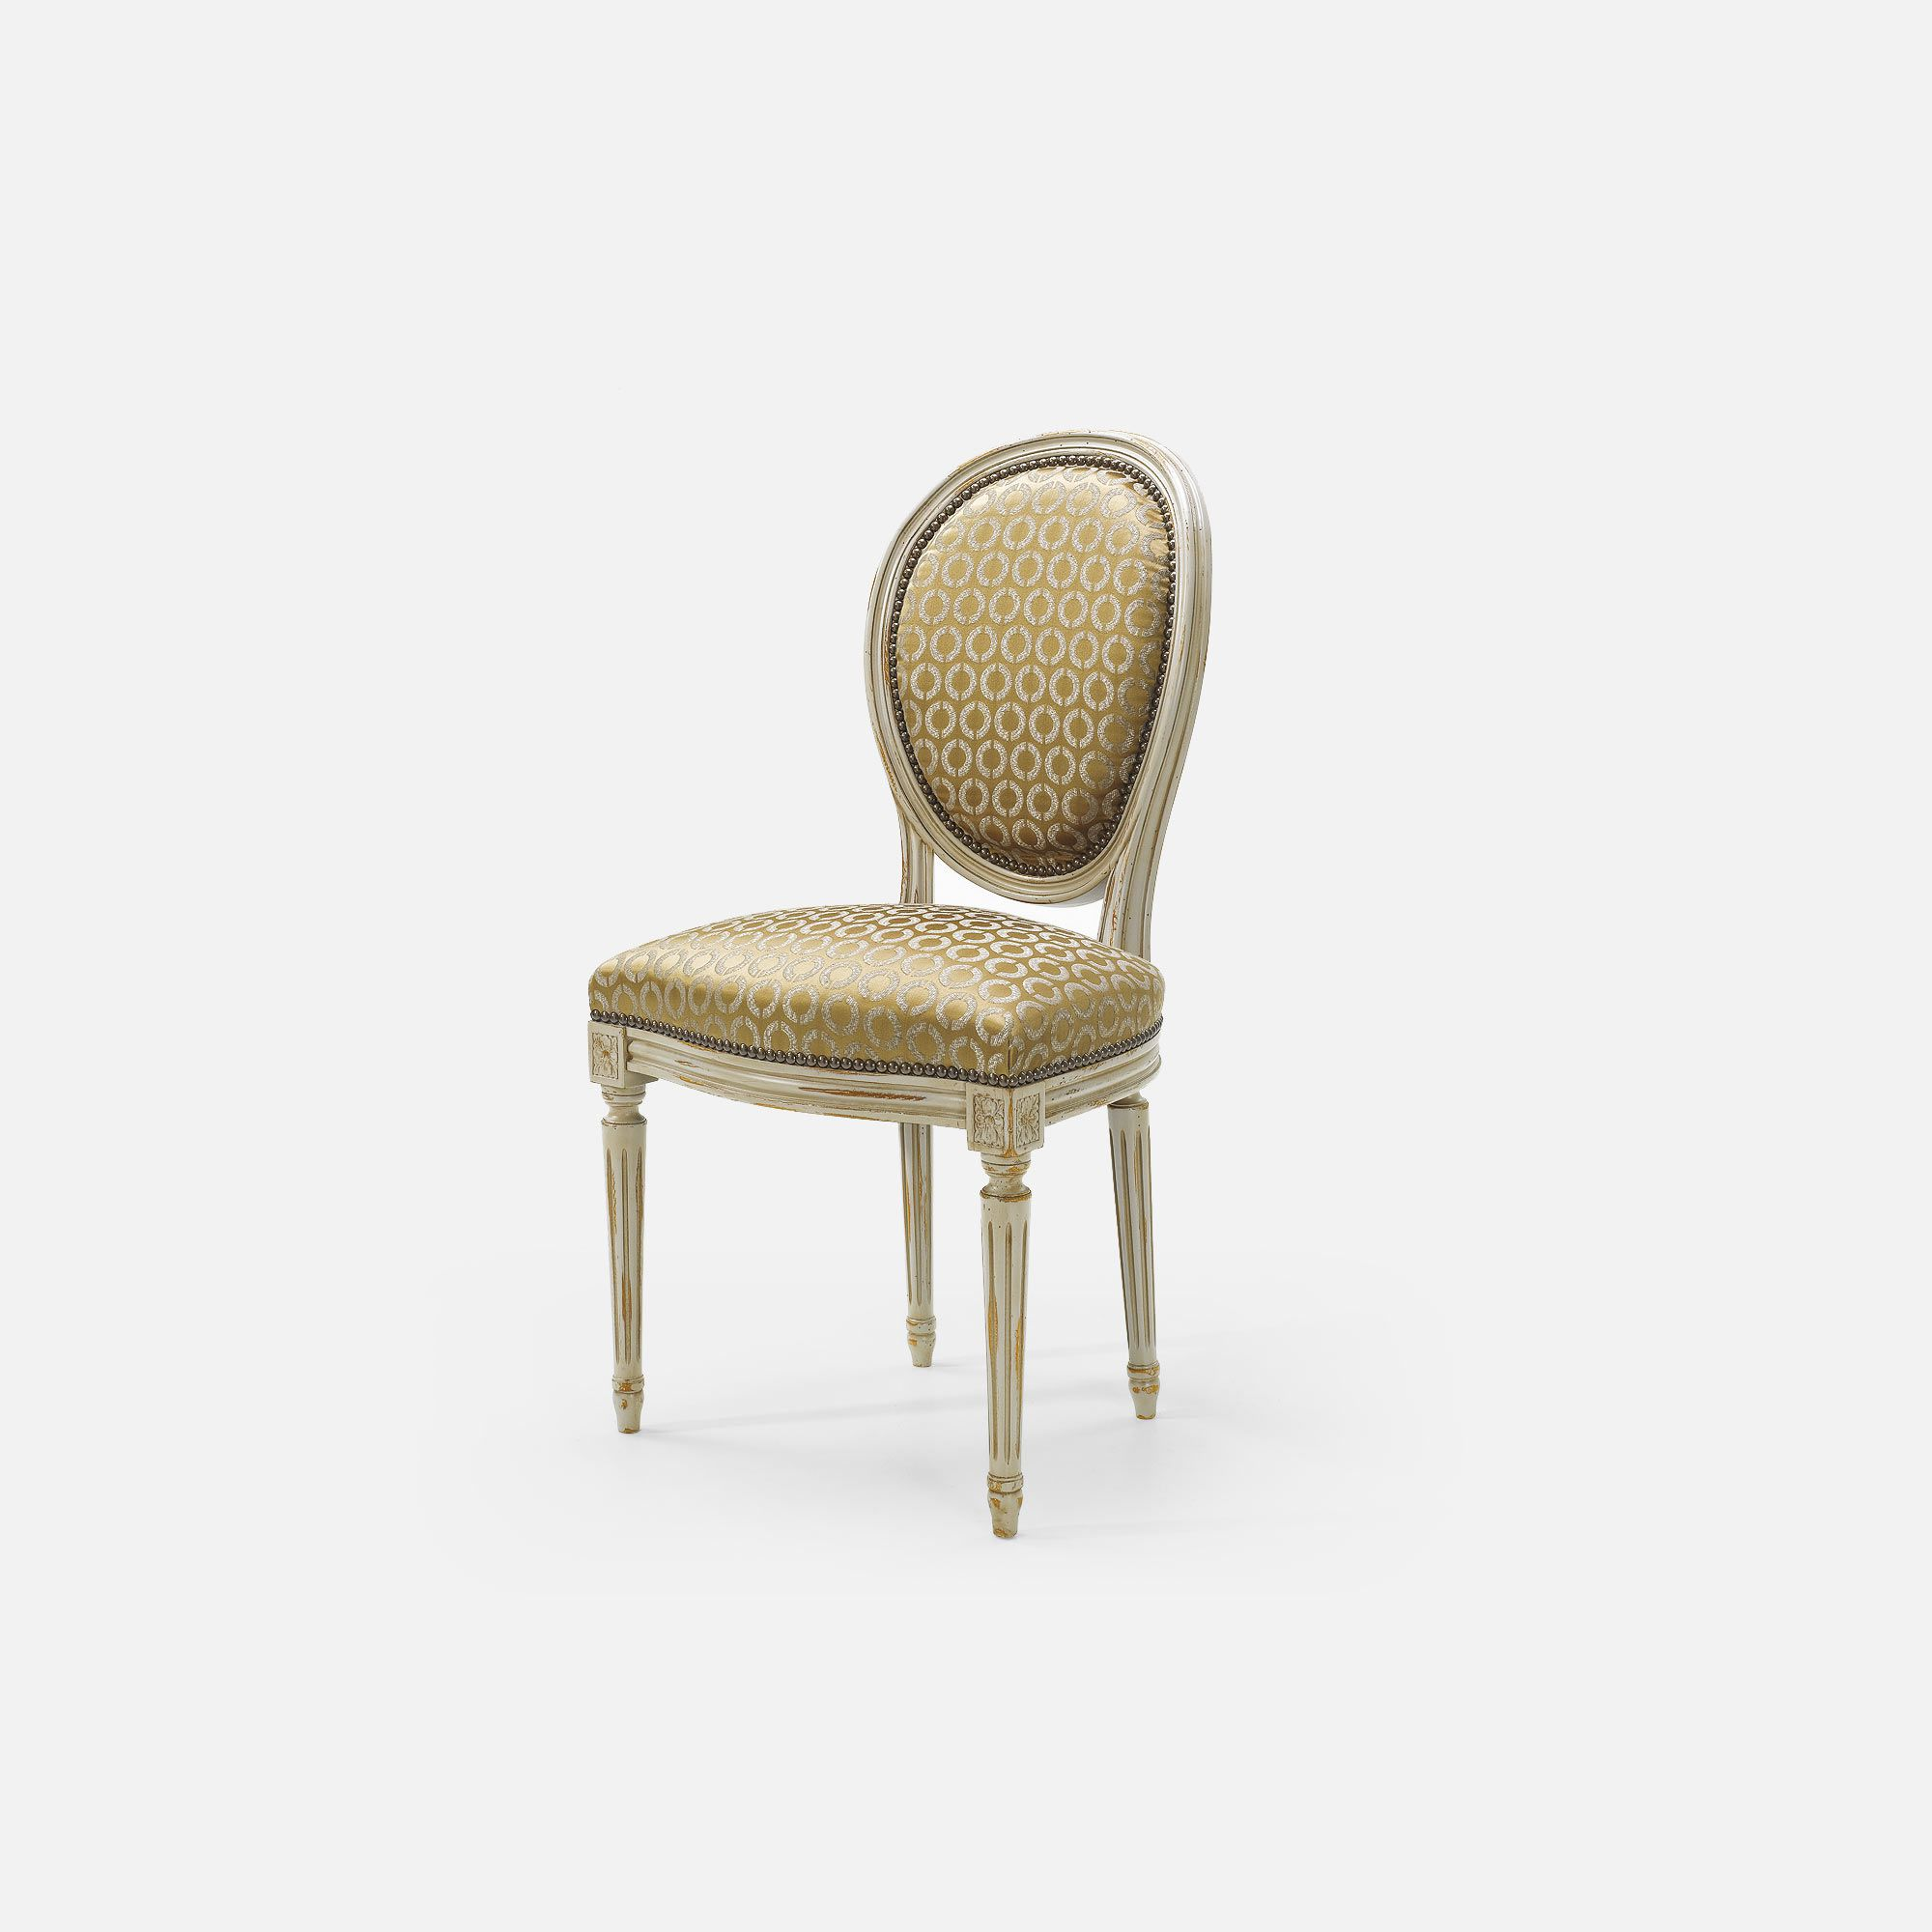 medallion chair for hotel restaurant bar louis xvi collinet. Black Bedroom Furniture Sets. Home Design Ideas